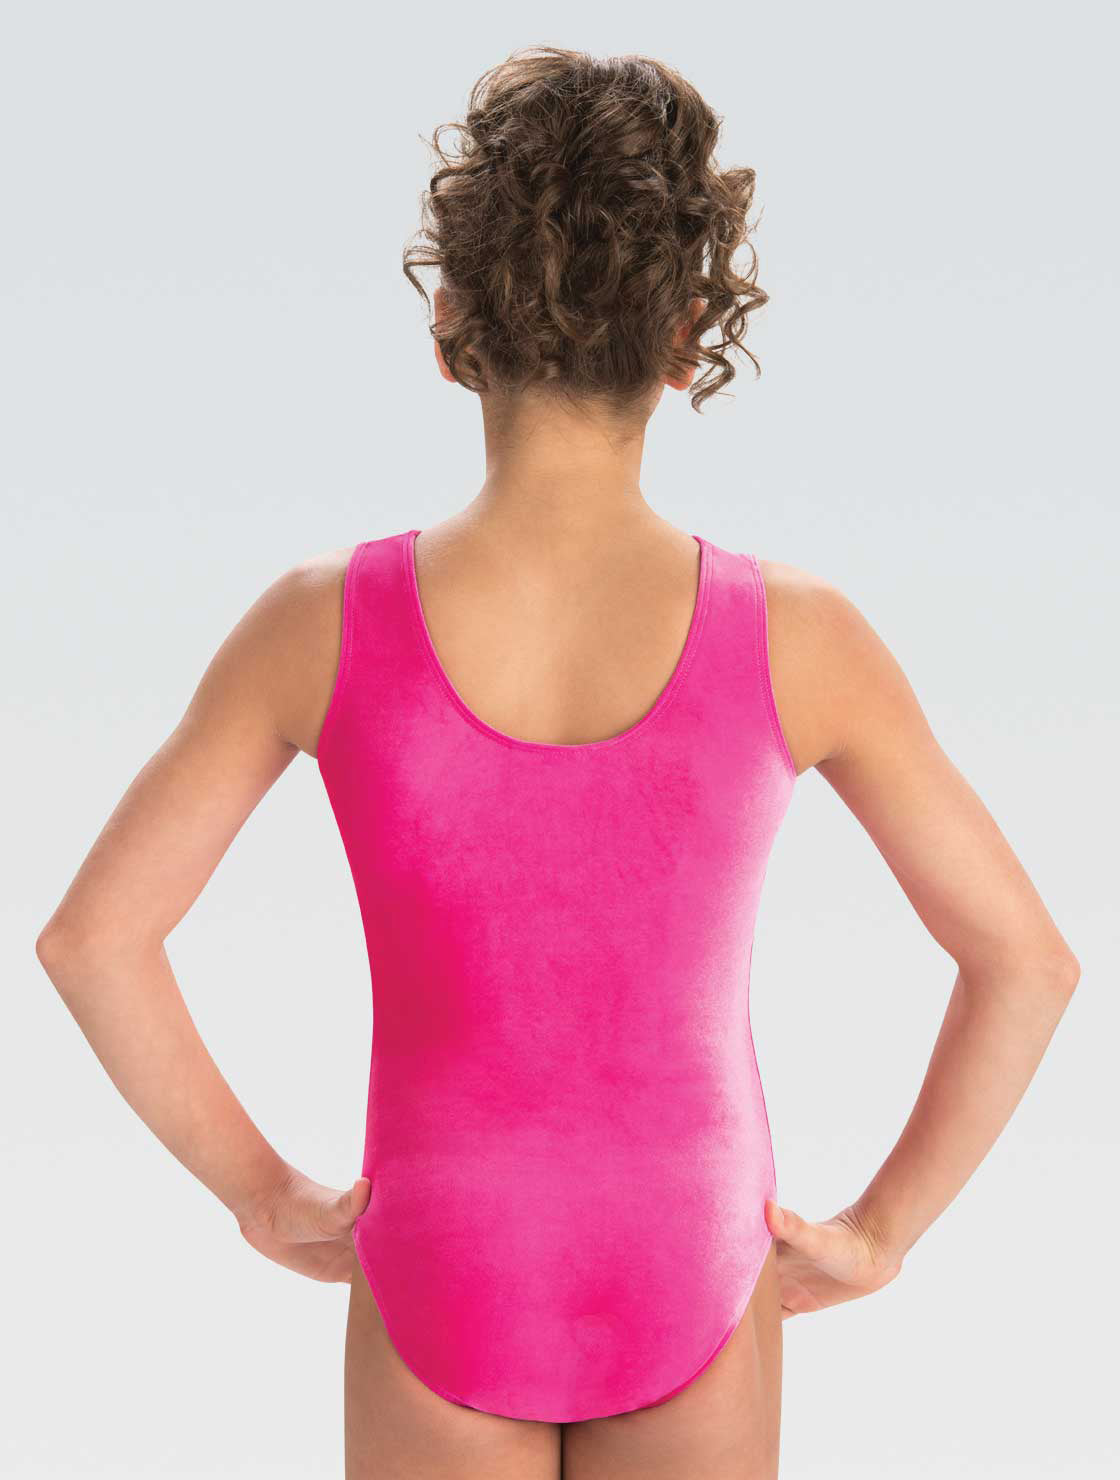 Details about  /NEW WITH TAGS ADULT X-SMALL VELET TANK GYM KIN LEOTARD